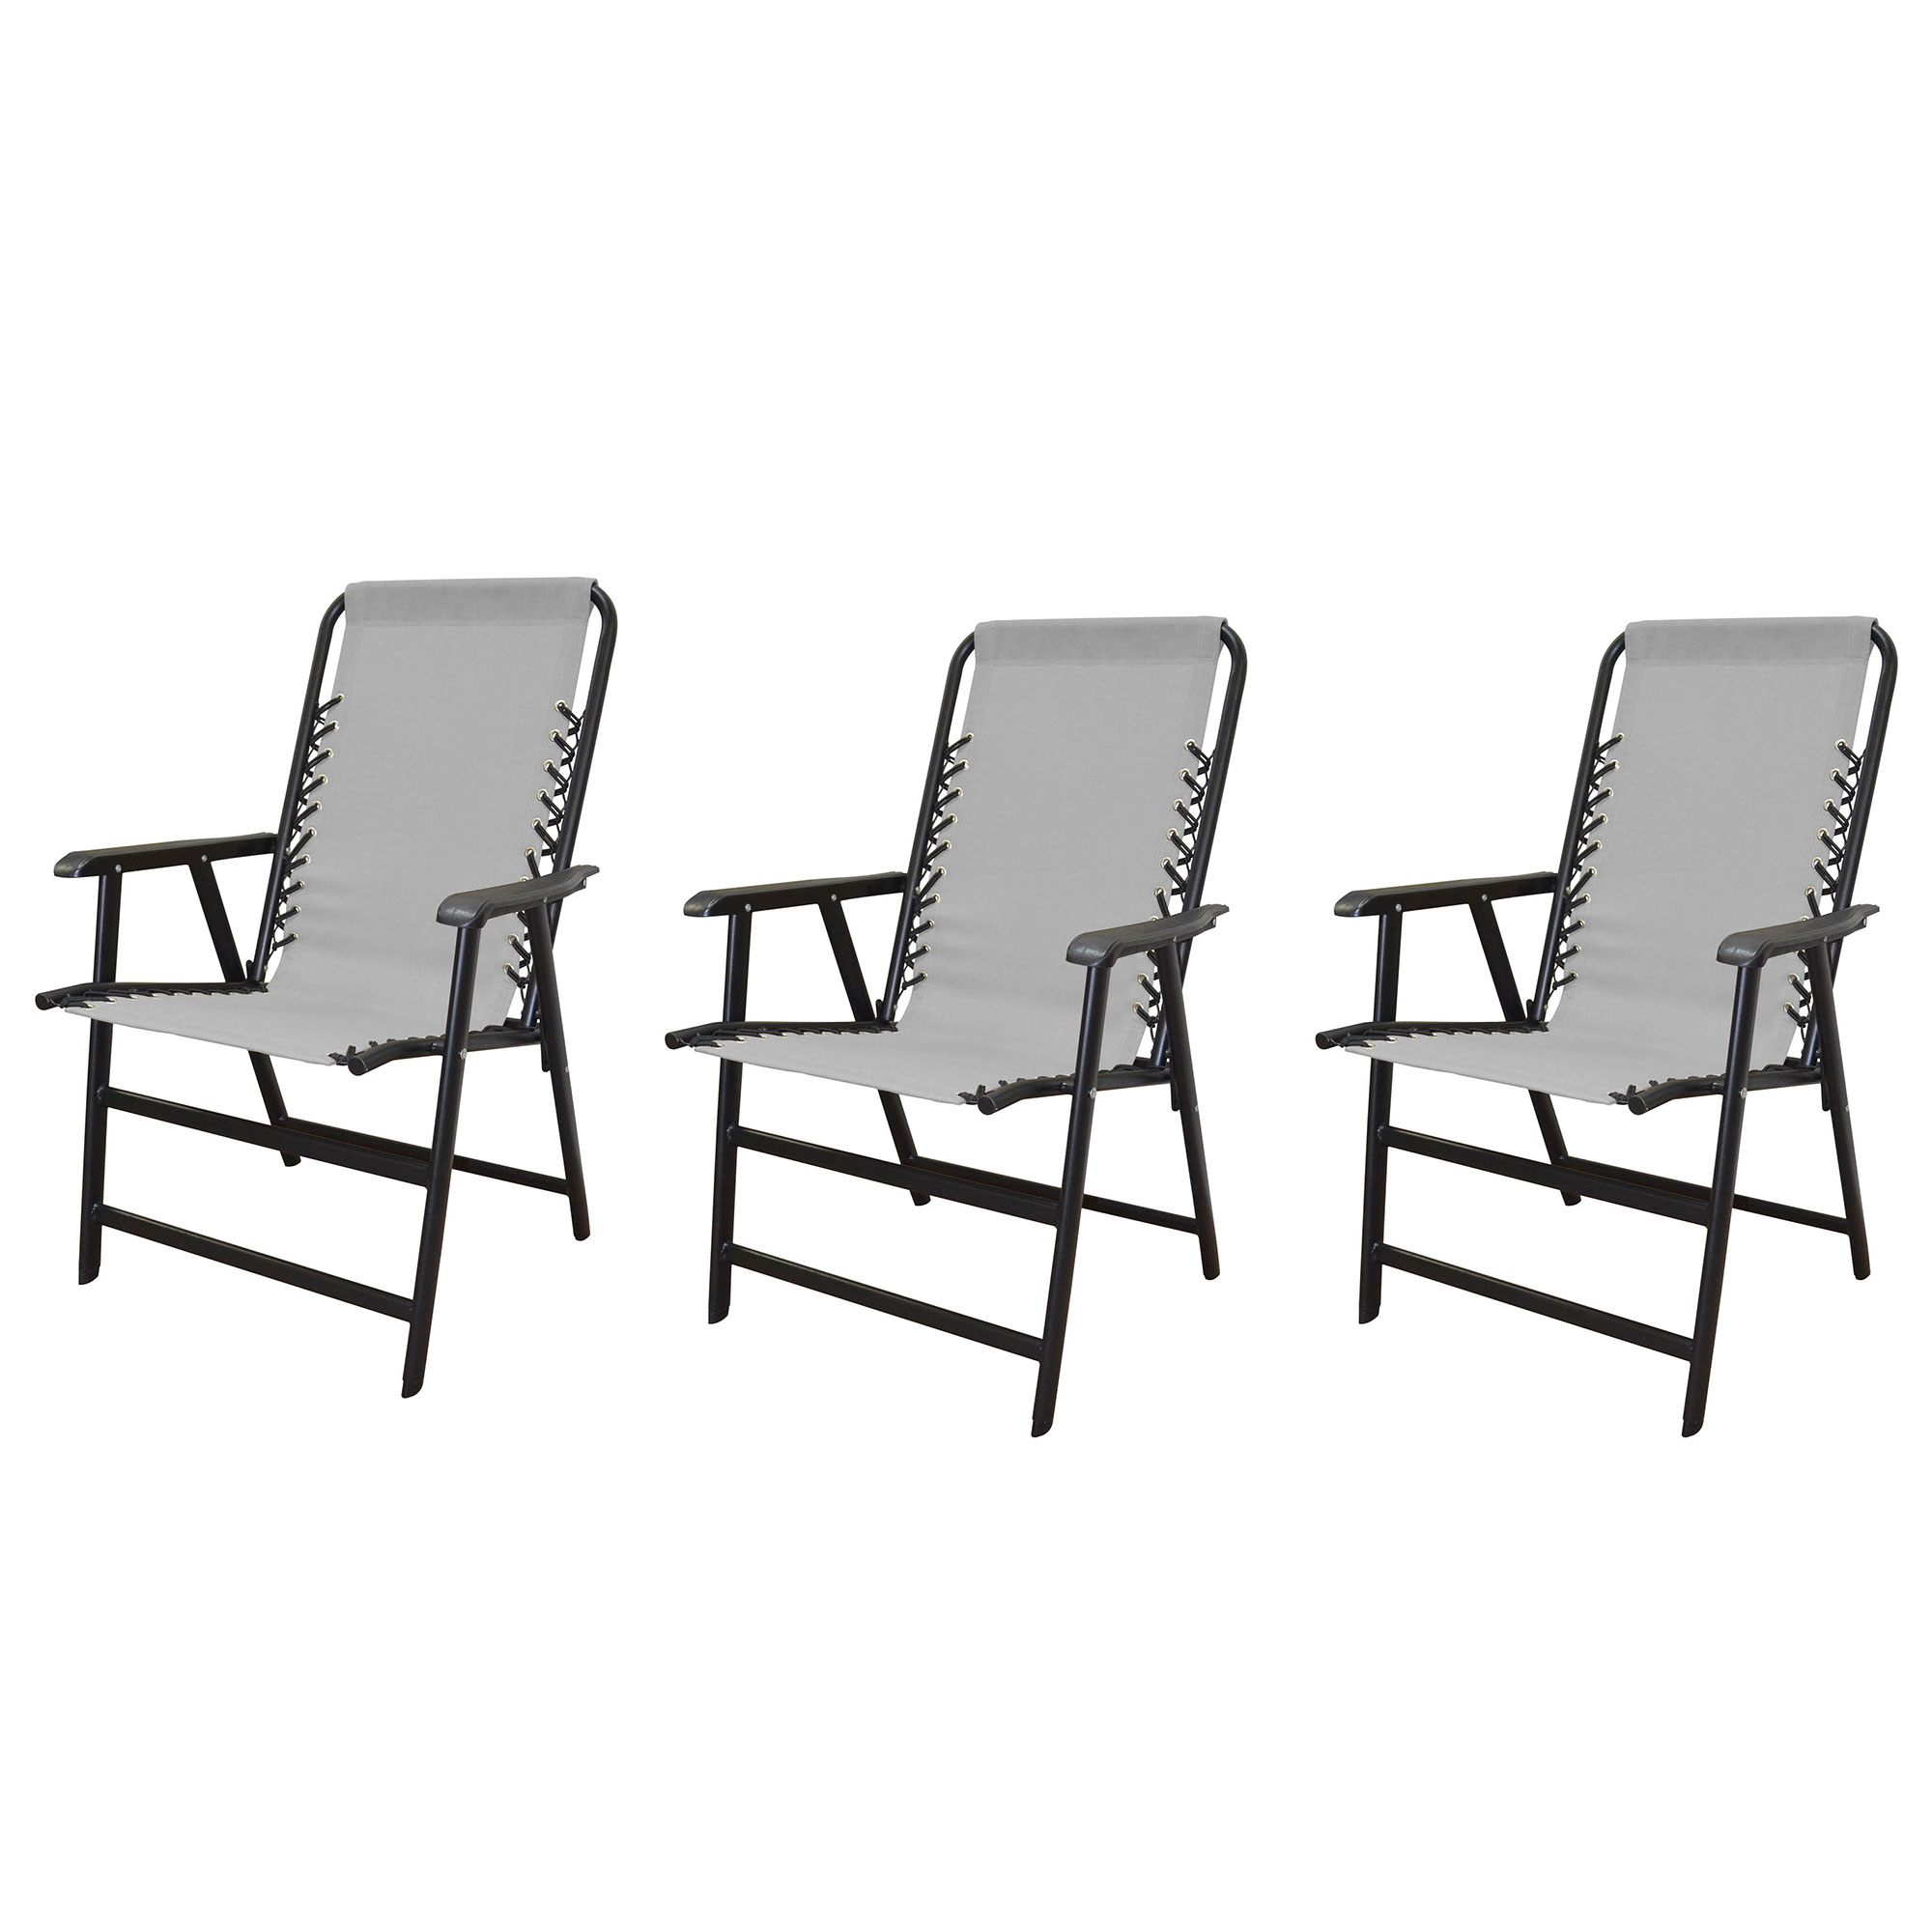 caravan canopy folding chairs pub kitchen table and infinity suspension steel patio deck chair gray 3 pack walmart com